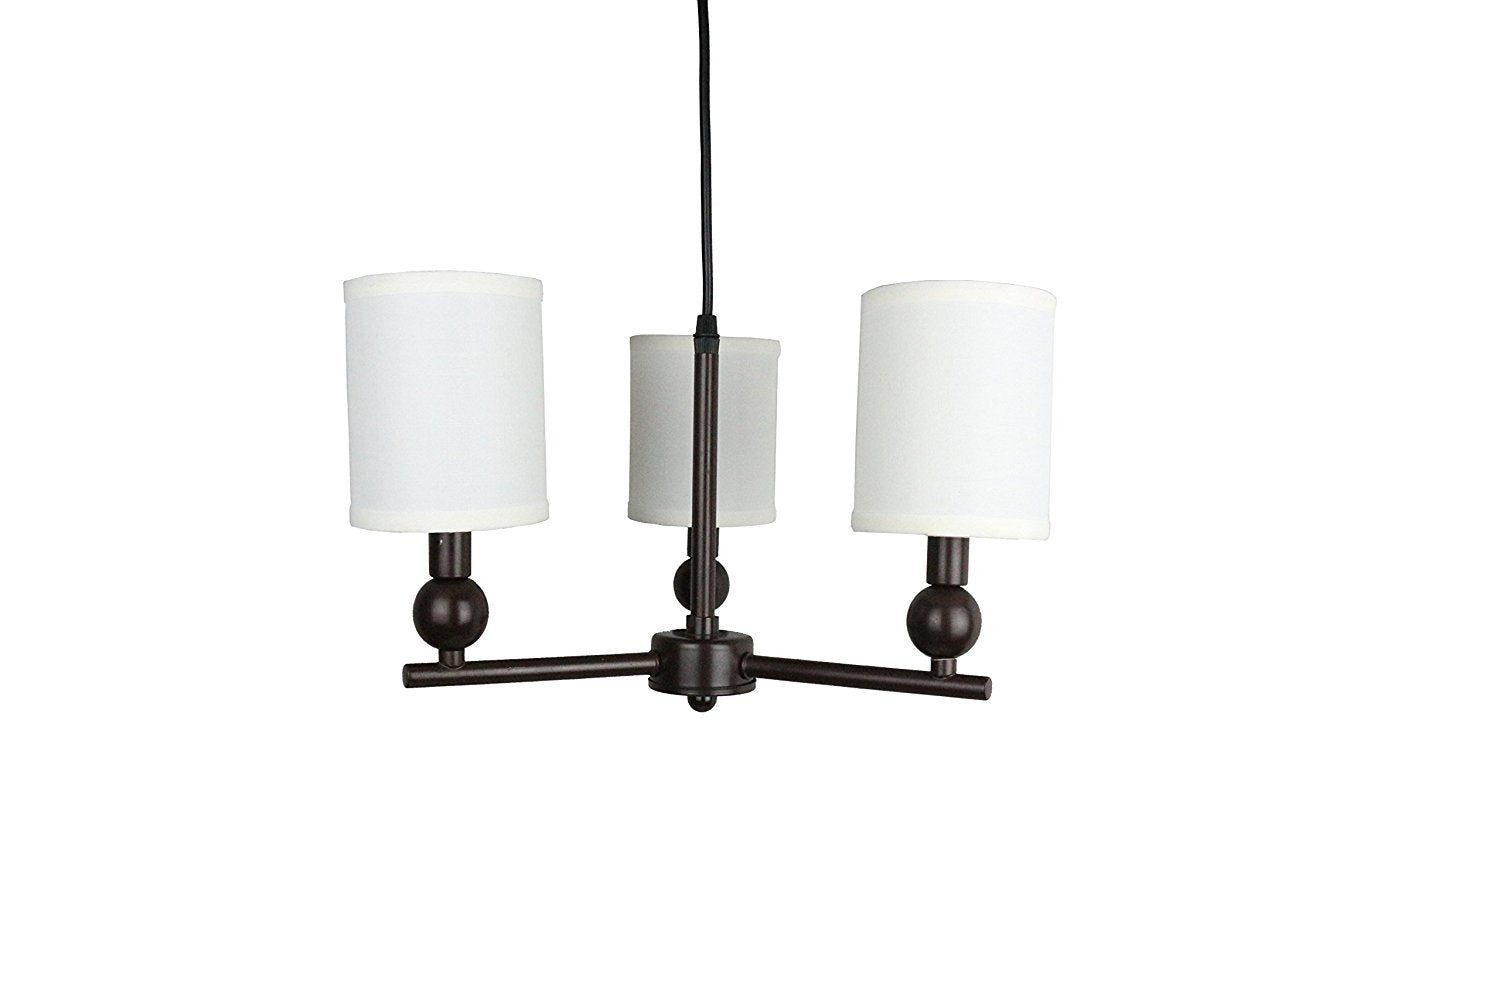 Portable Zio 3-Light Chandelier with Off White Linen Shades